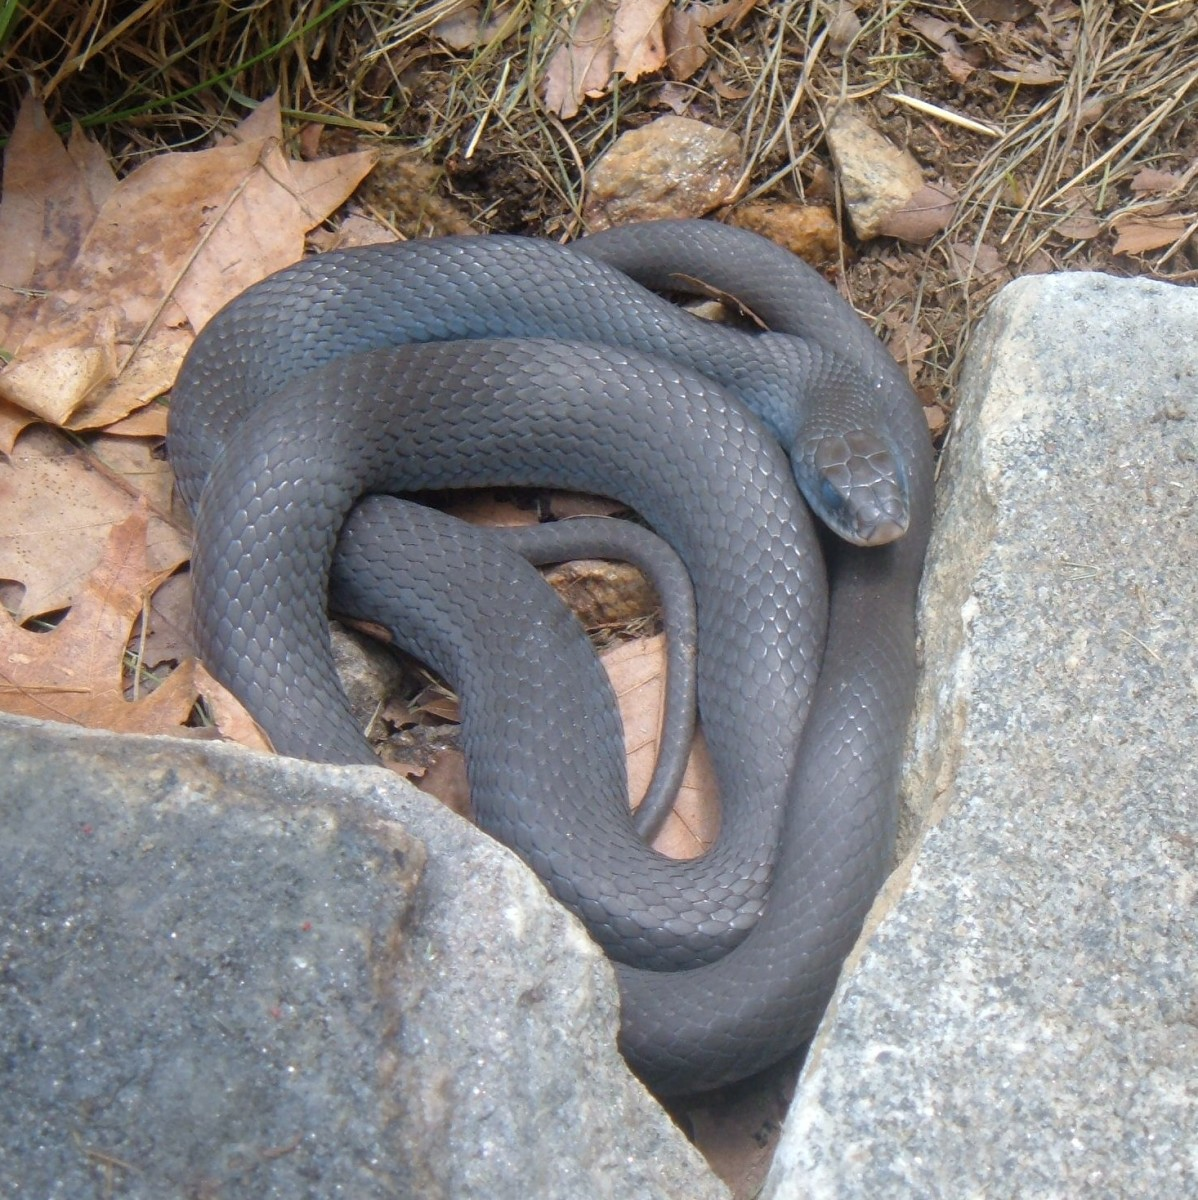 This Black Racer is 5' long!